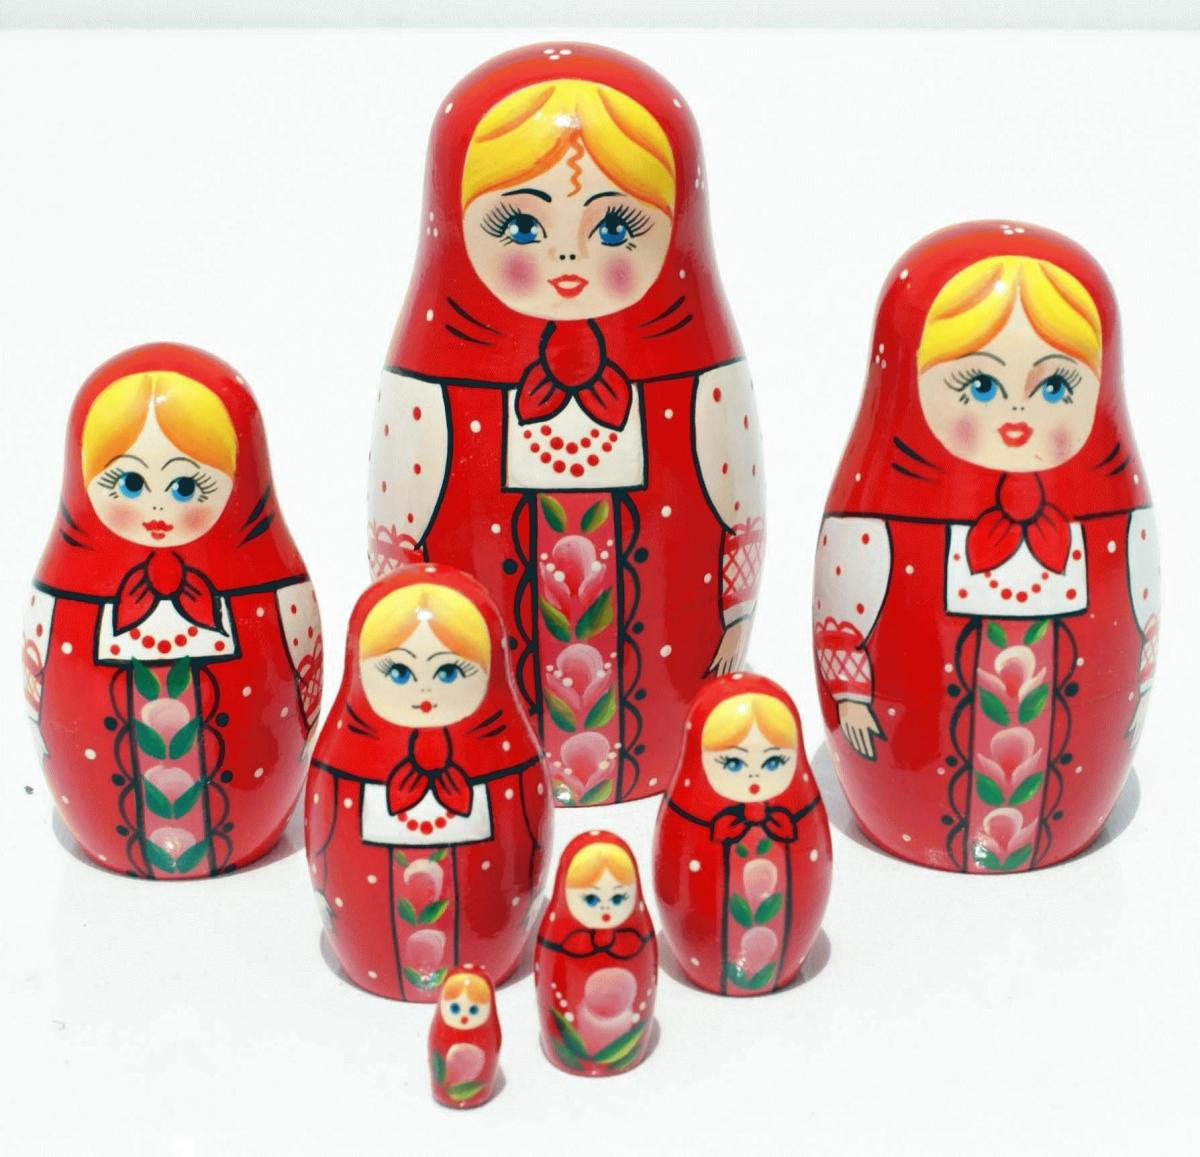 The Matryoshka Effect